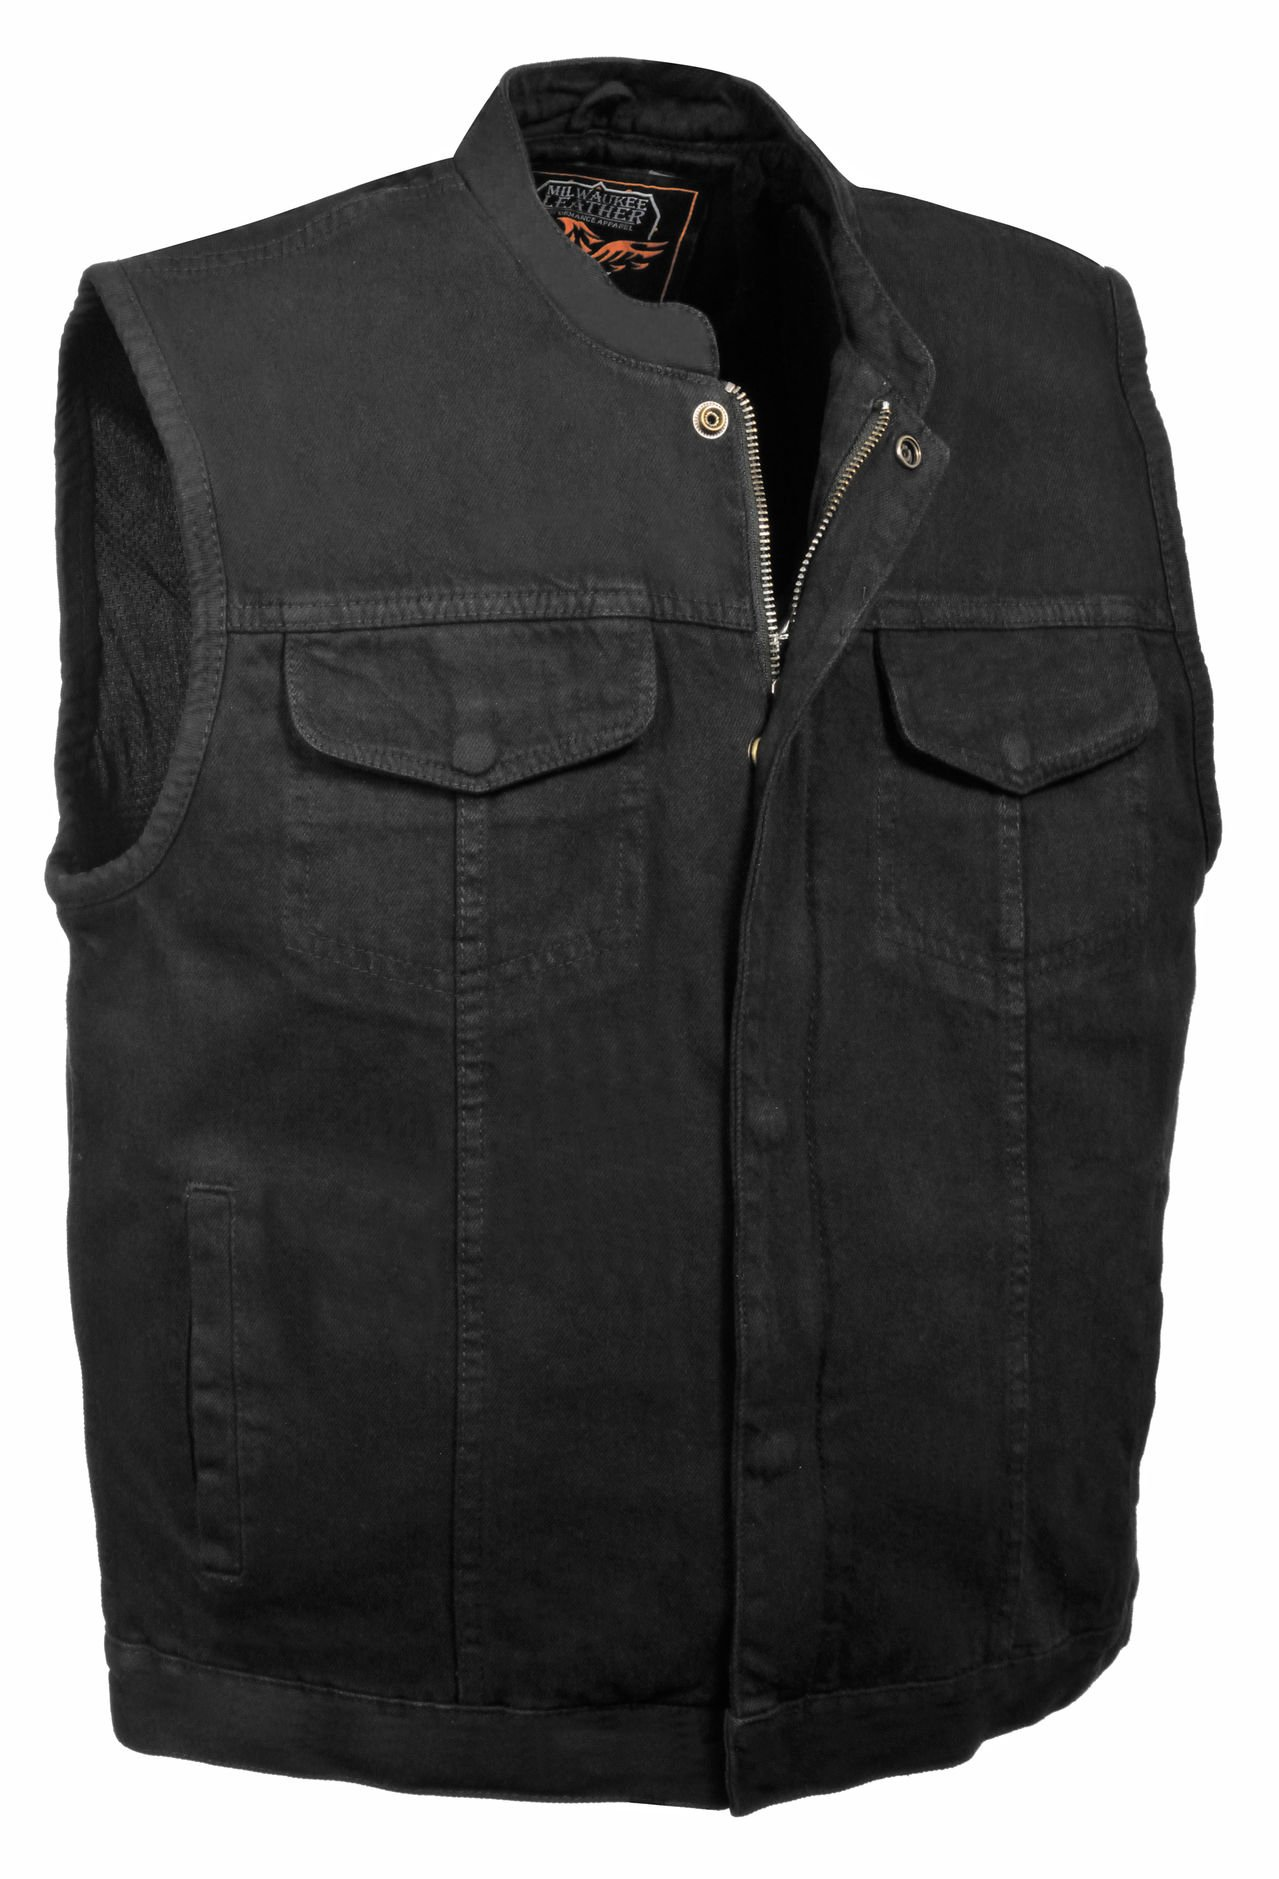 Milwaukee Leather Men's Concealed Snap Denim Club Style Vest w/Hidden Zipper (Black, 2X) by Milwaukee Leather